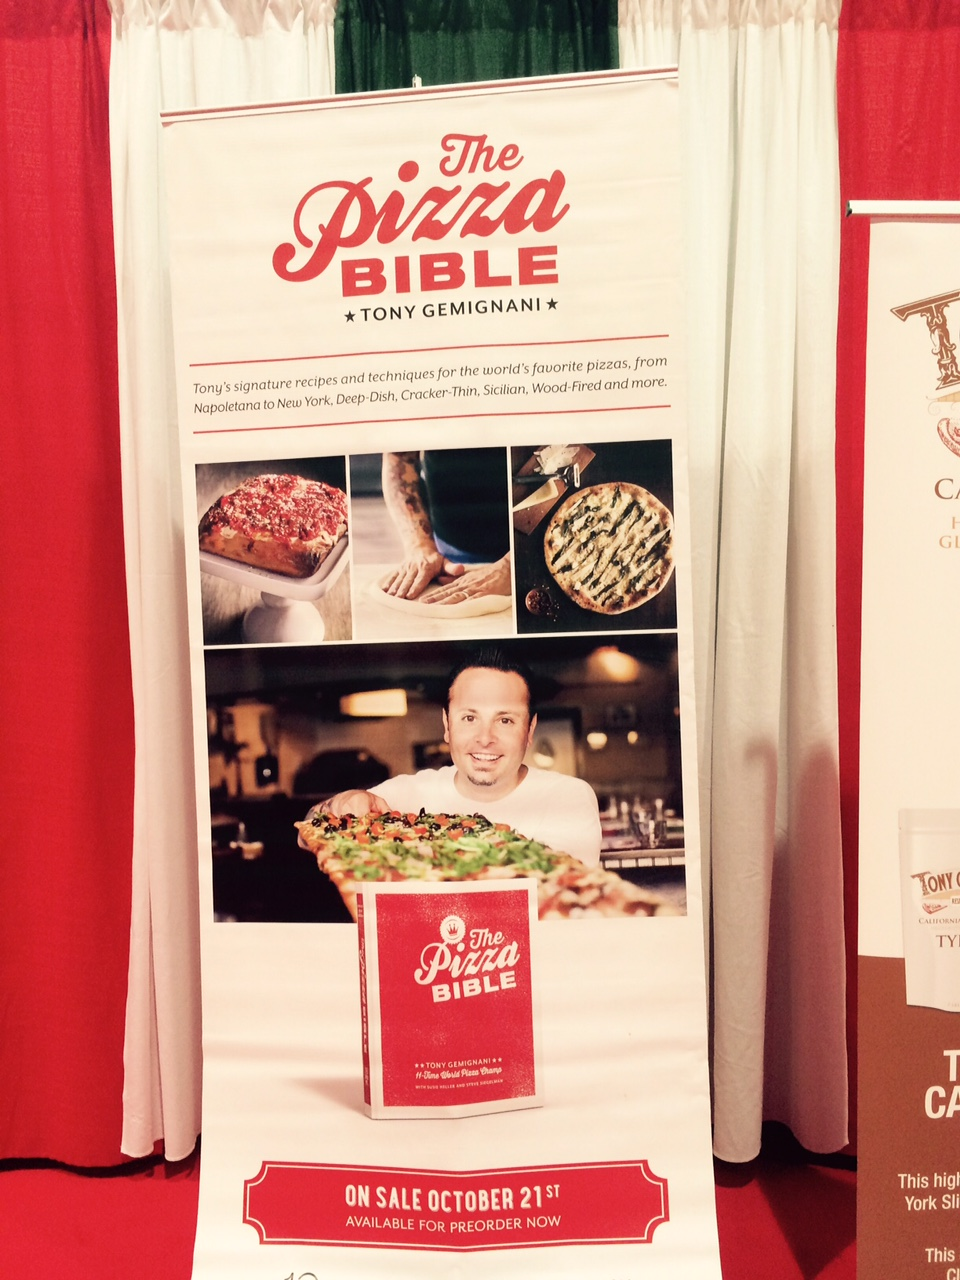 Banner showcasing Tony G's book, The Pizza Bible. Photo by Tom Tallarico.